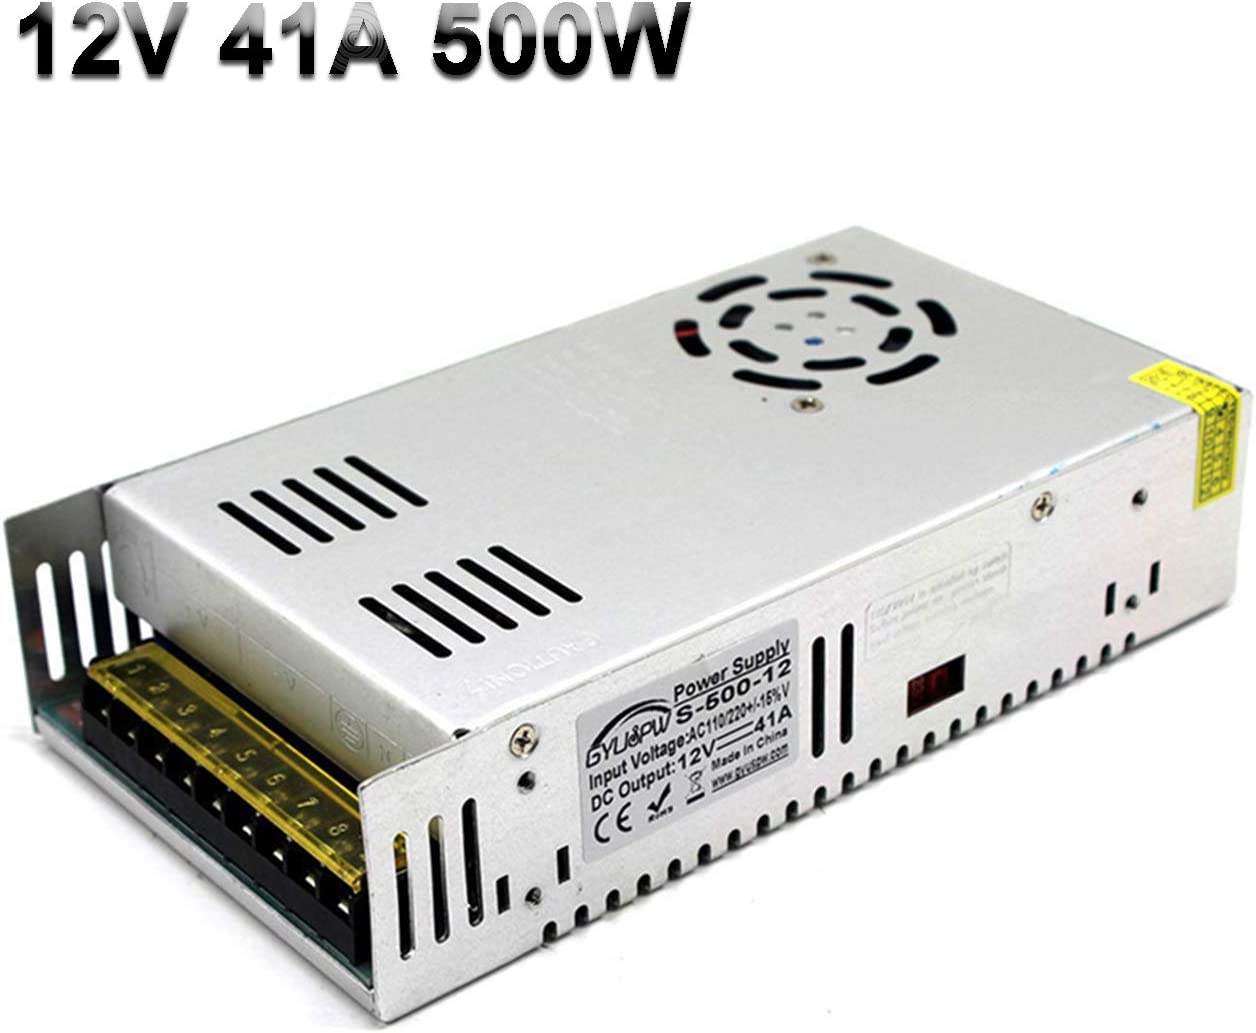 LED Strip Lights,Industrial Etc. Computer Project Radio 12V 30A 360W Switching Power Supply SMPS Universal Regulated Transformer 110//220VAC-DC12V for CCTV Monitoring,3D Printer